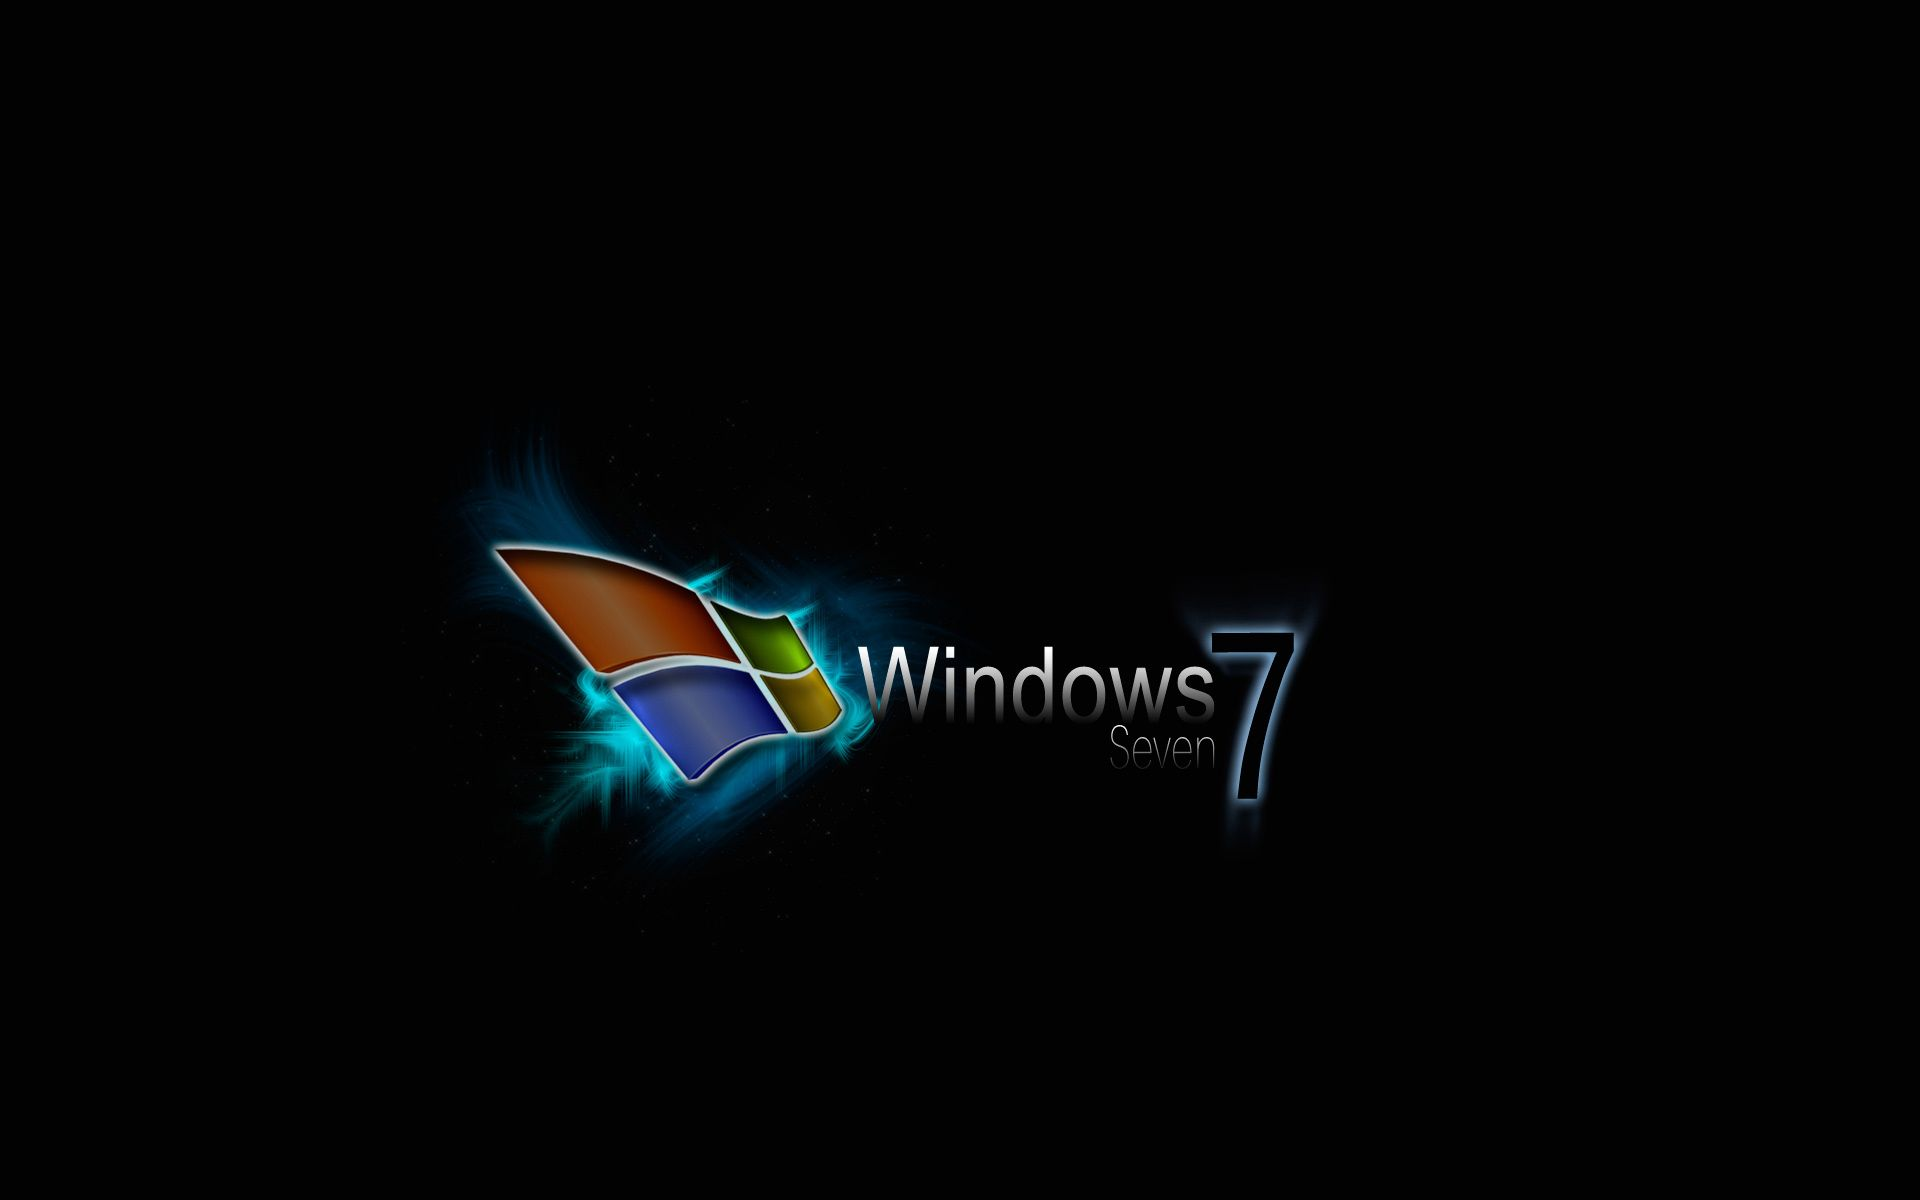 animated desktop wallpaper for windows wallpapers android 1600a—1000 windows 7 3d wallpaper free download